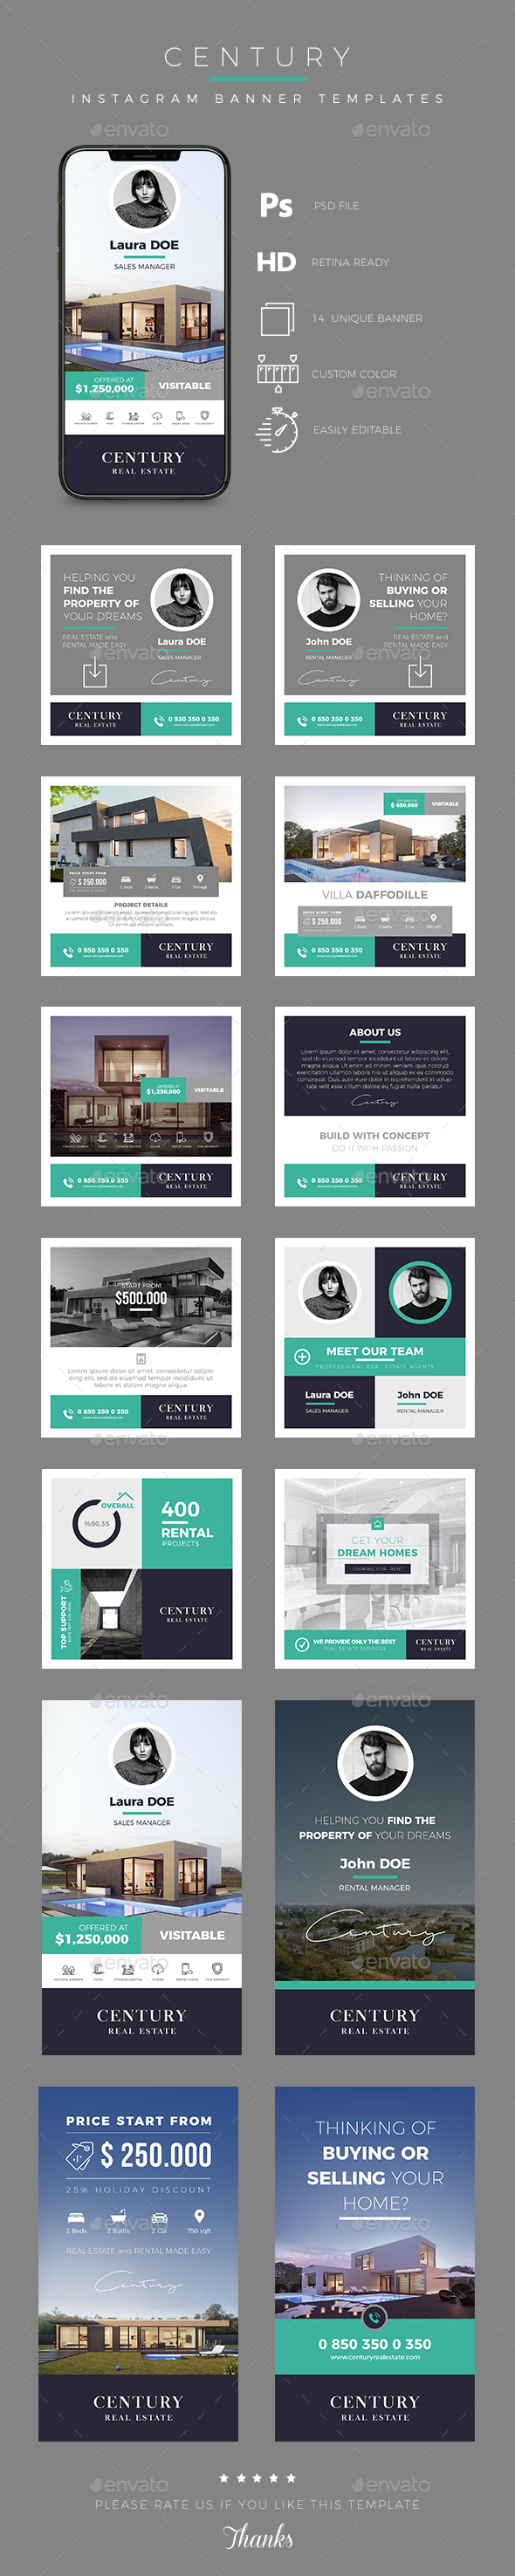 Real Estate Instagram Banner and Story Templates - Social Media Web Elements